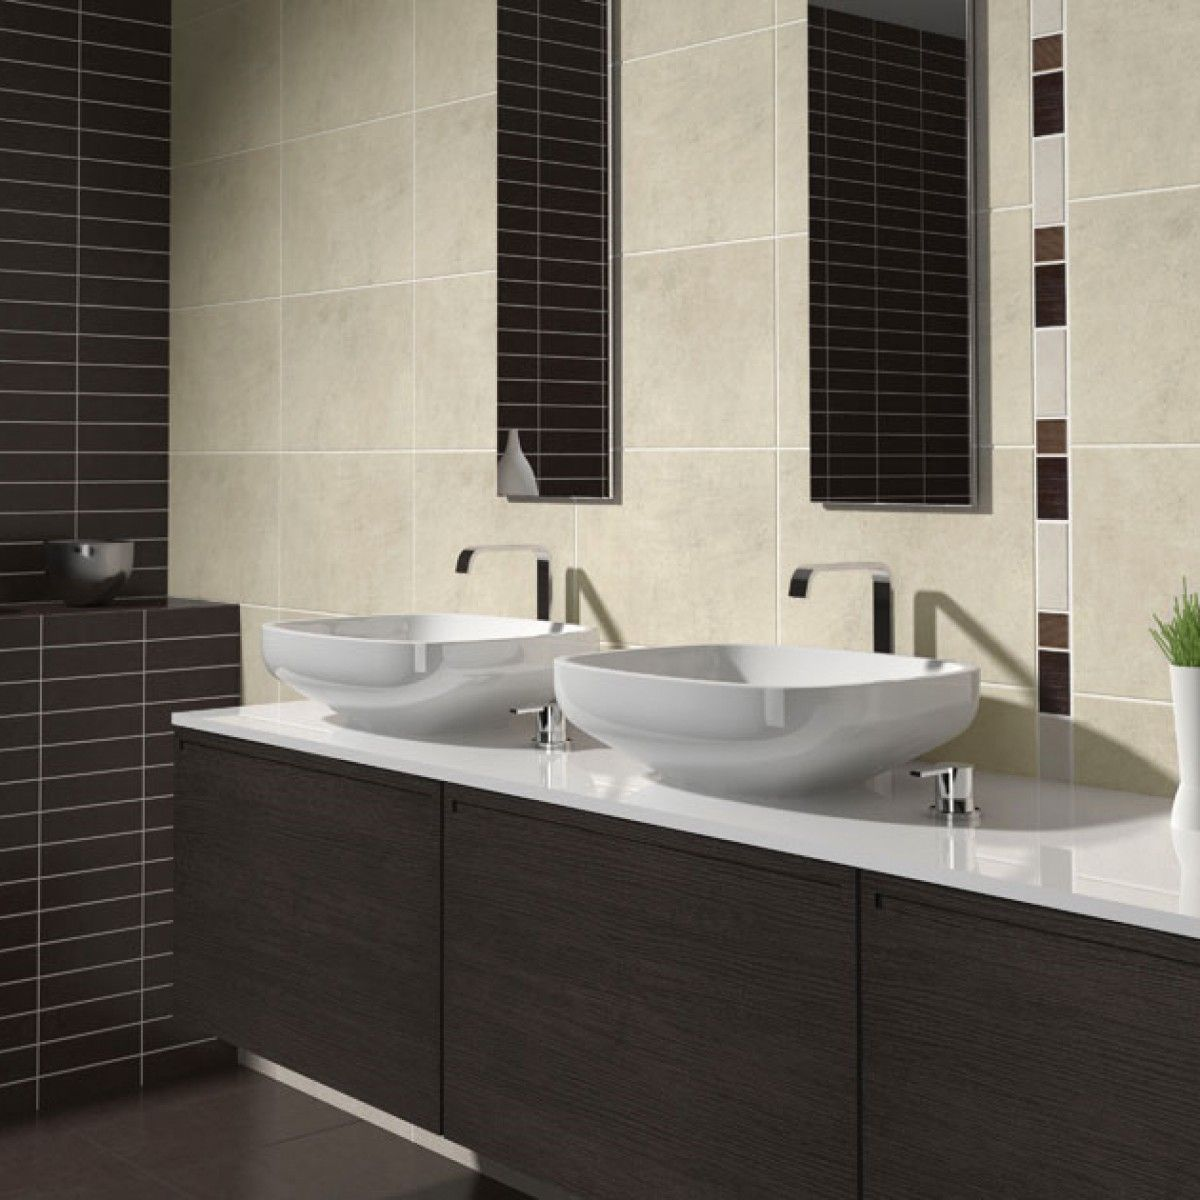 Fiore Marfil Wall - 400mm x 250mm | Bathroom Tiles | Pinterest ...